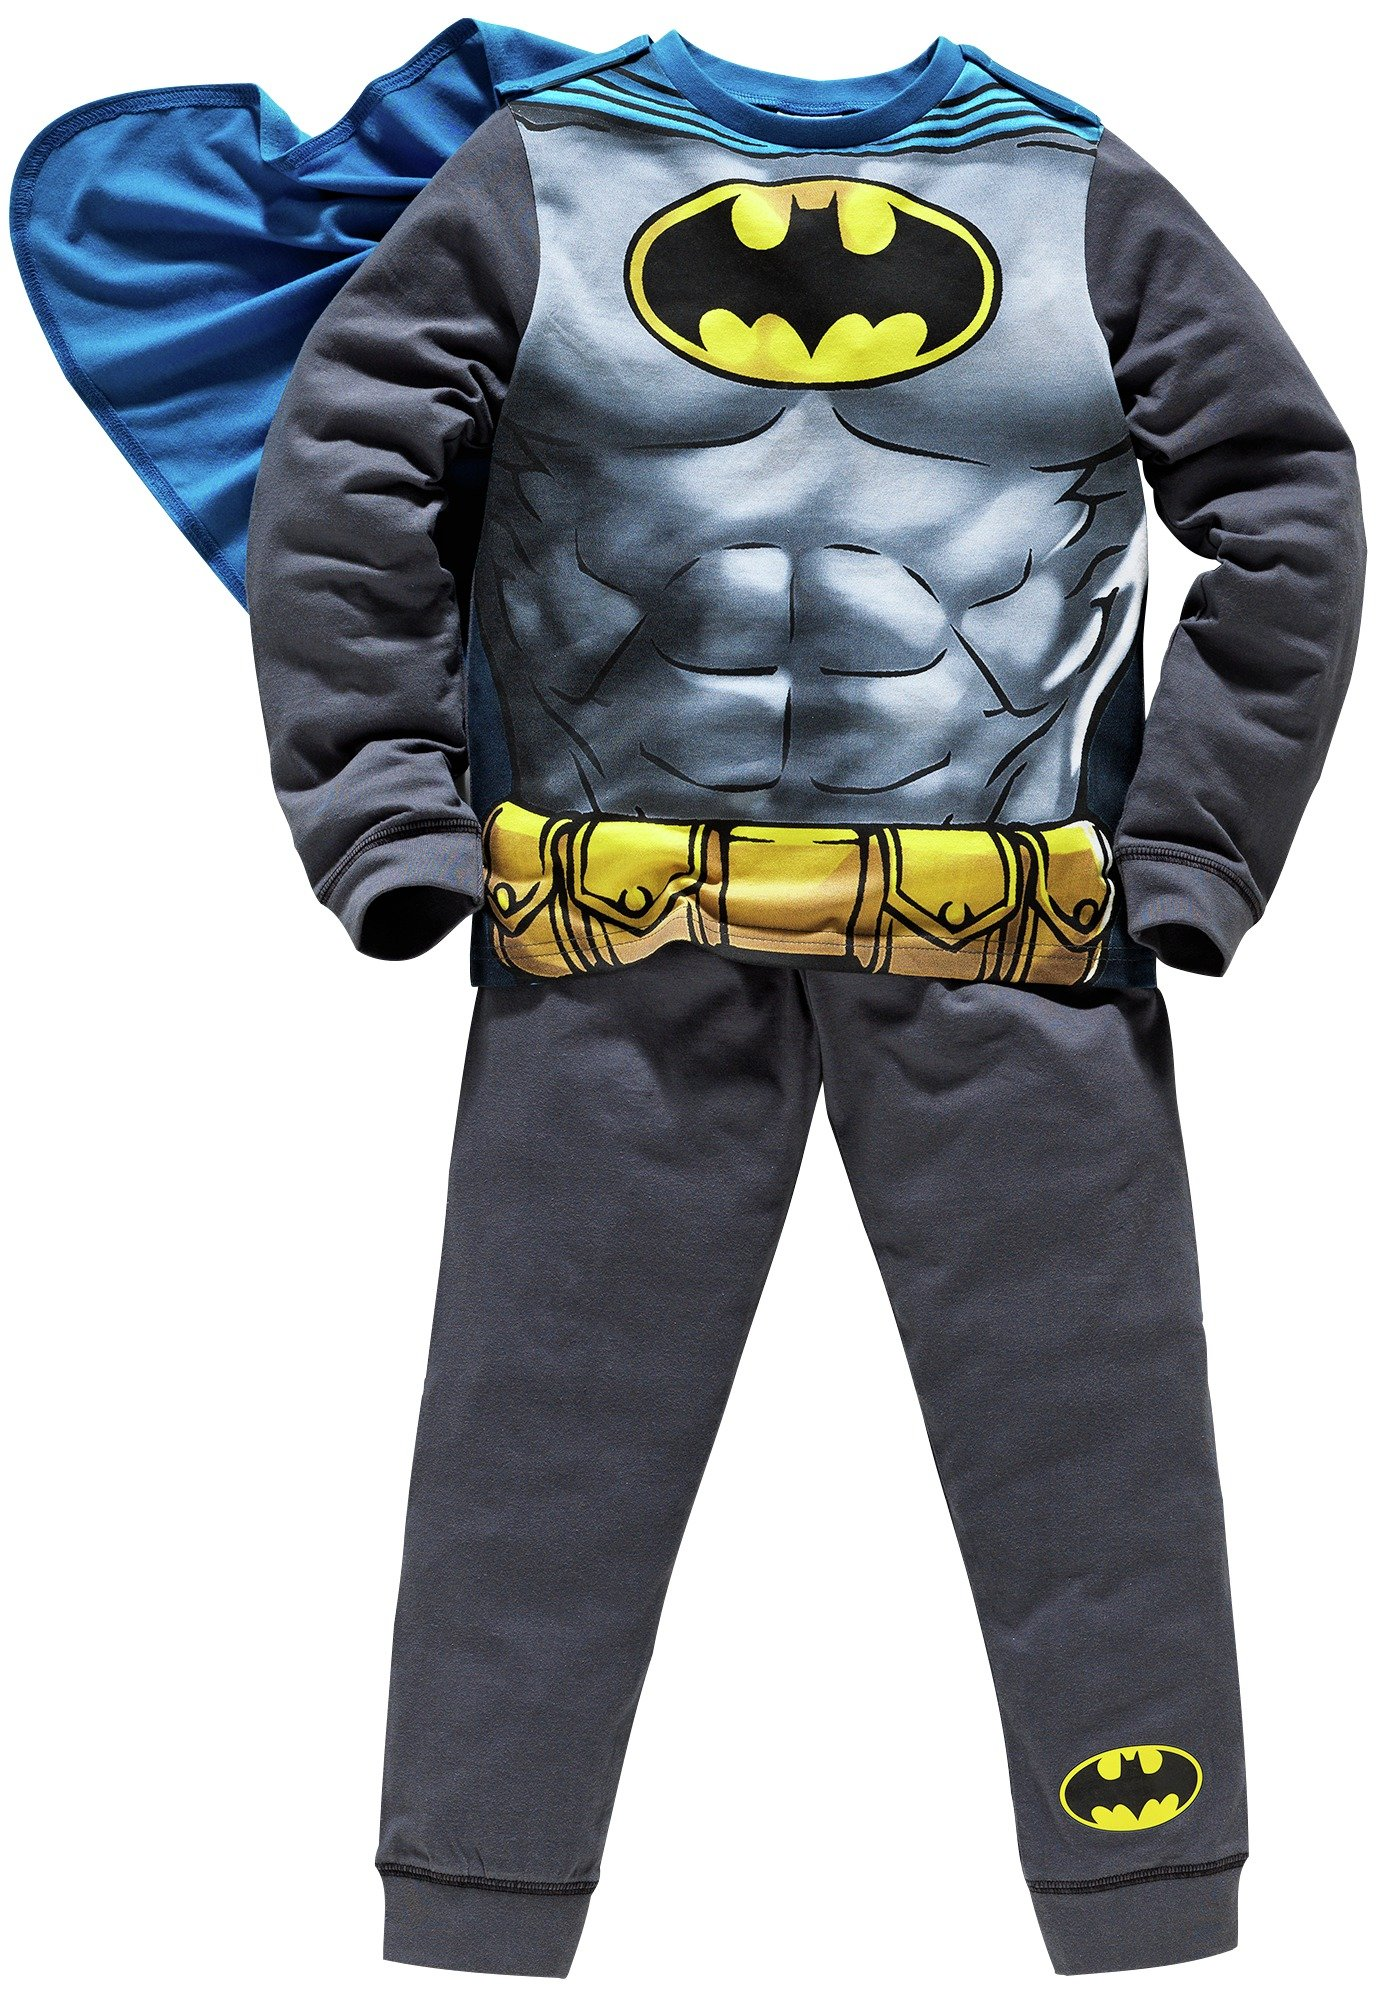 Image of Batman Novelty Pyjamas with Cape - 3-4 Years